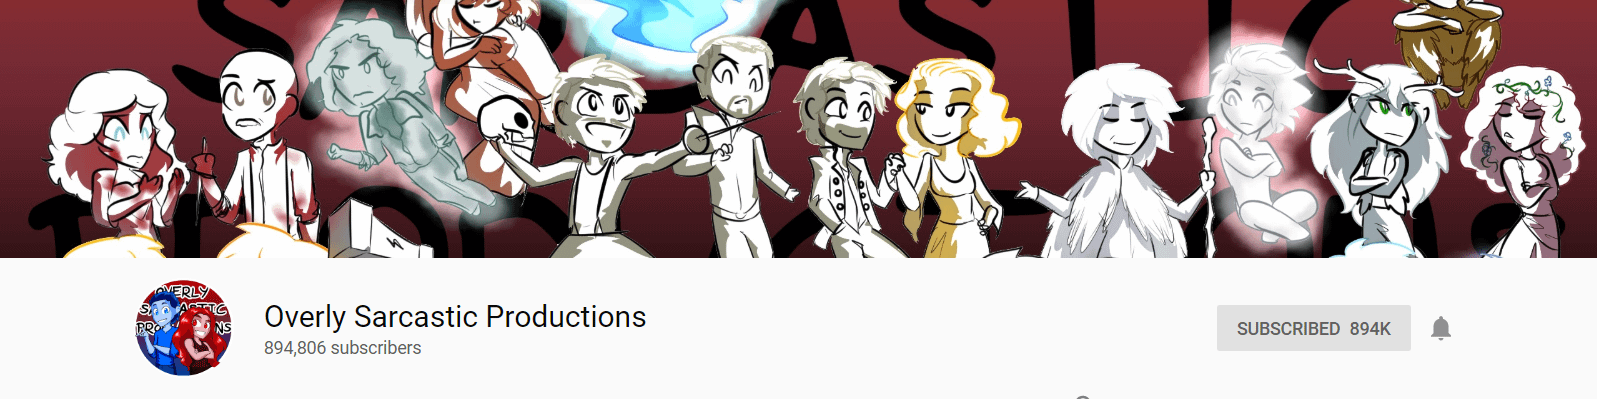 Best YouTube Banner Size: Example From Overly Sarcastic Productions